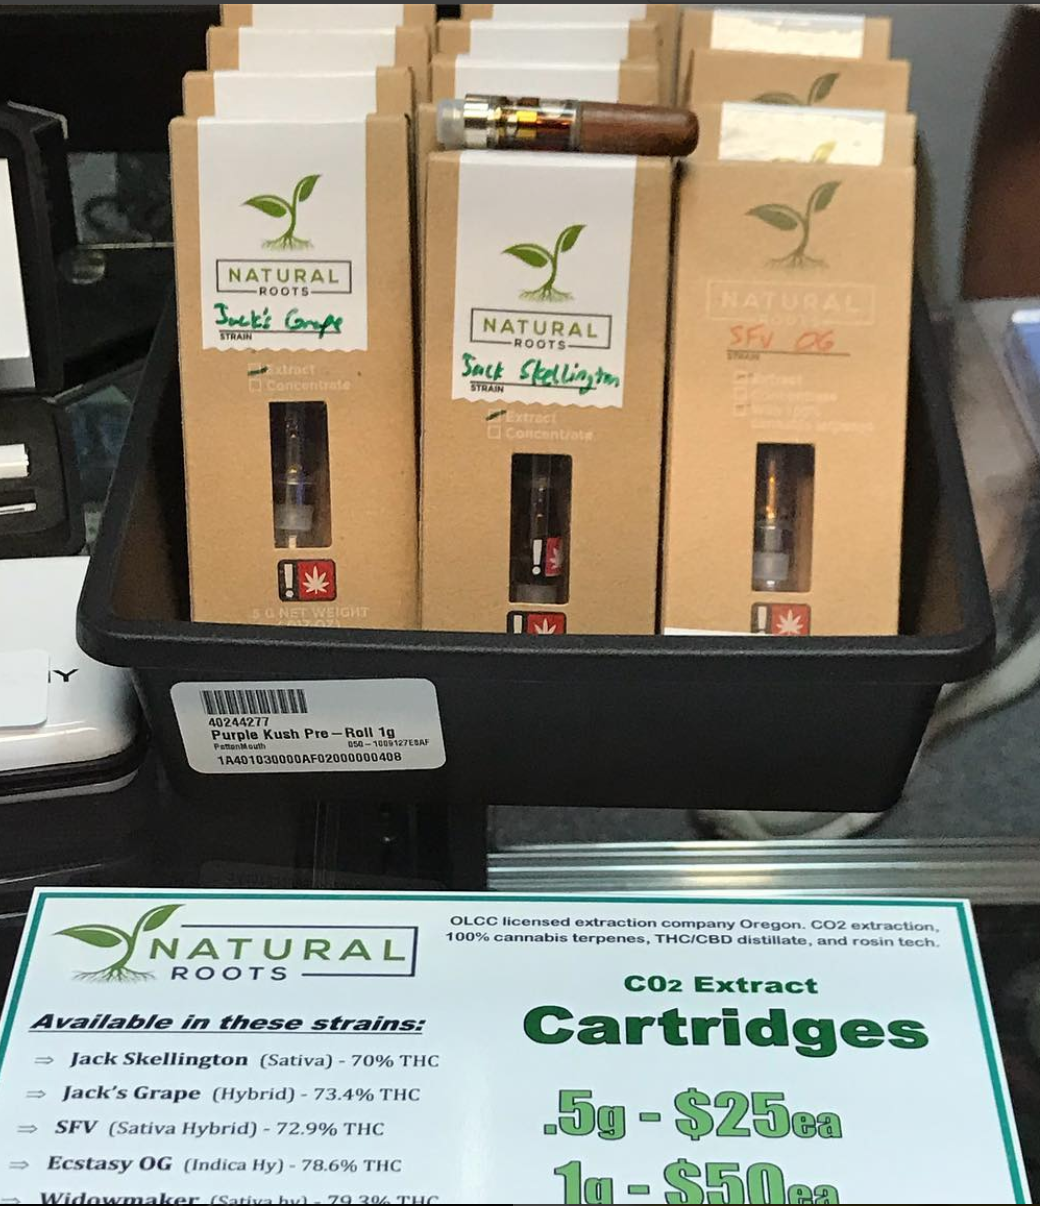 Natural Roots Cartridges